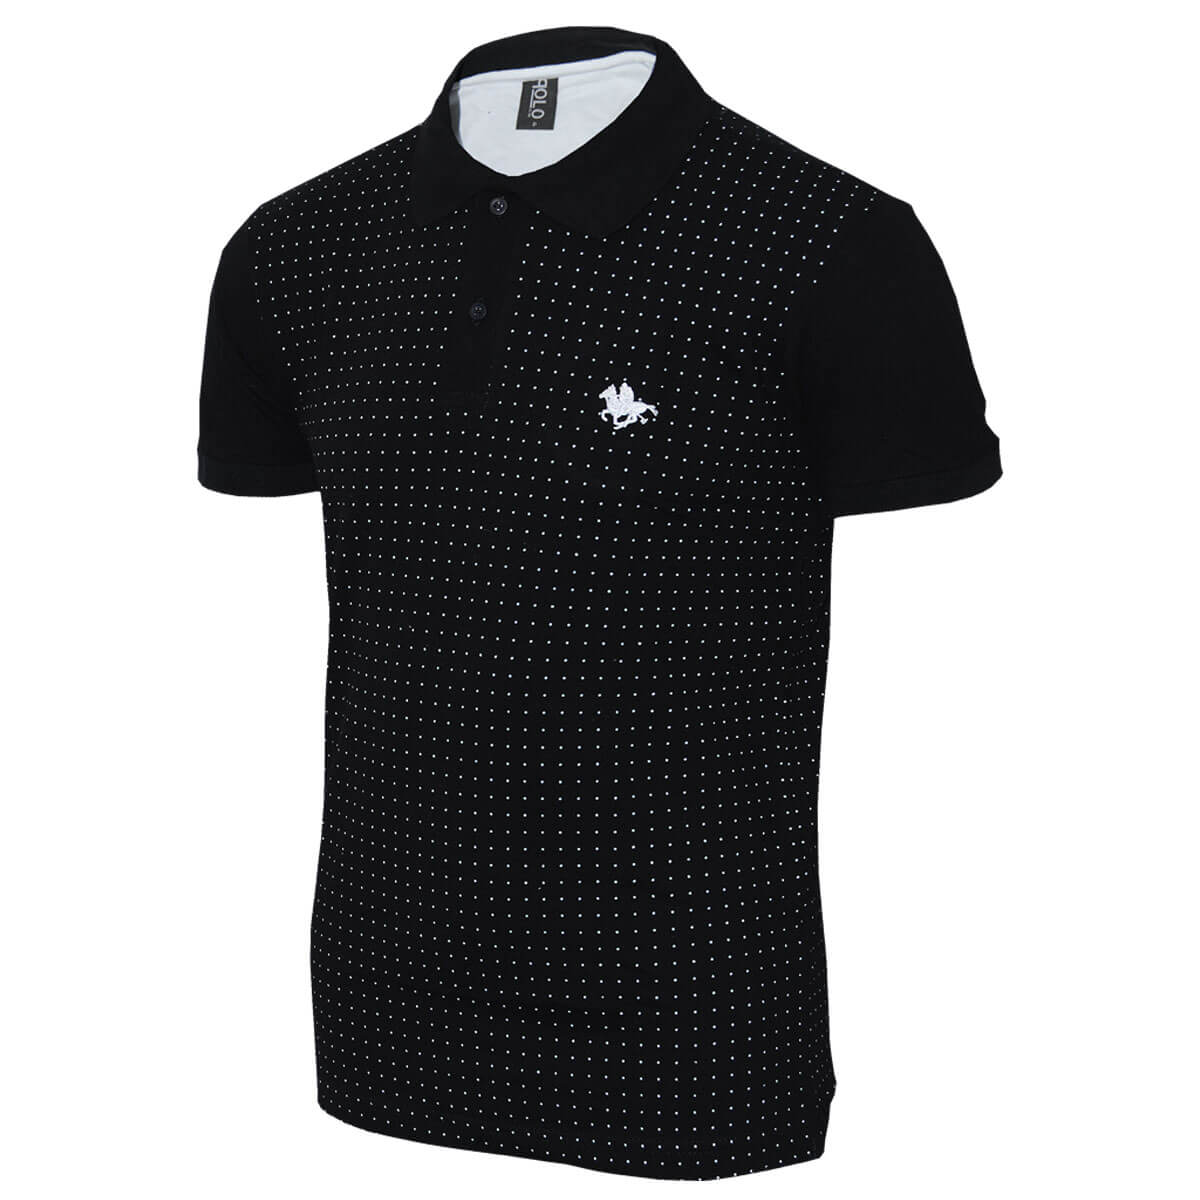 CAMISA POLO RG518 ESTAMPA MINI PRINT POÁ BORDADO ESPECIAL  14065